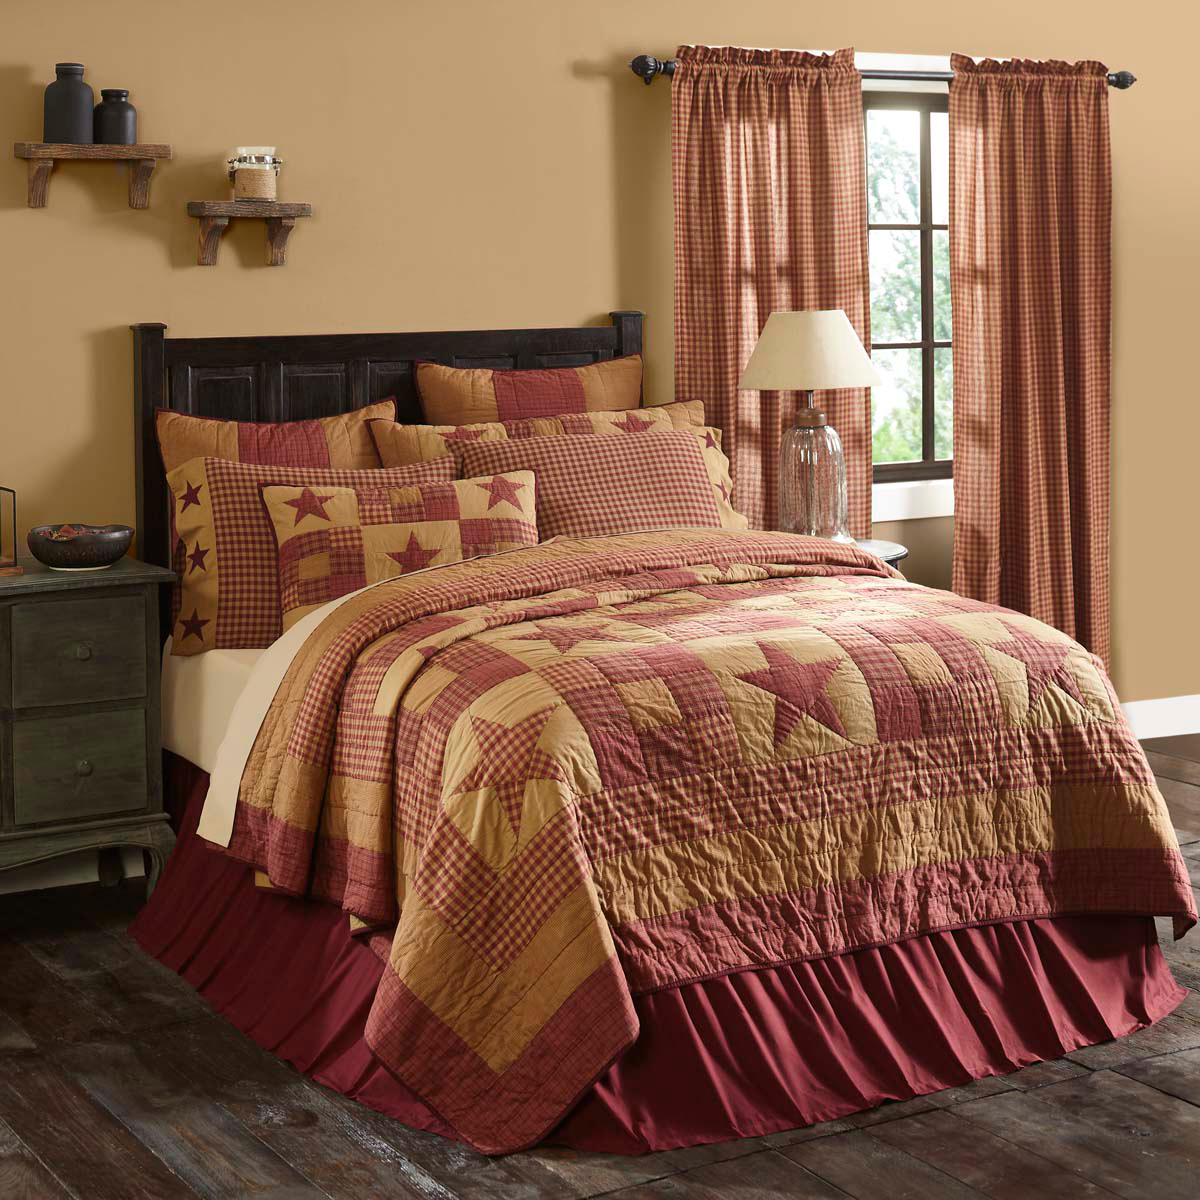 7-pc Ninepatch Star Burgundy & Tan (QUEEN) Quilt Set - Country Charm -VHC Brands